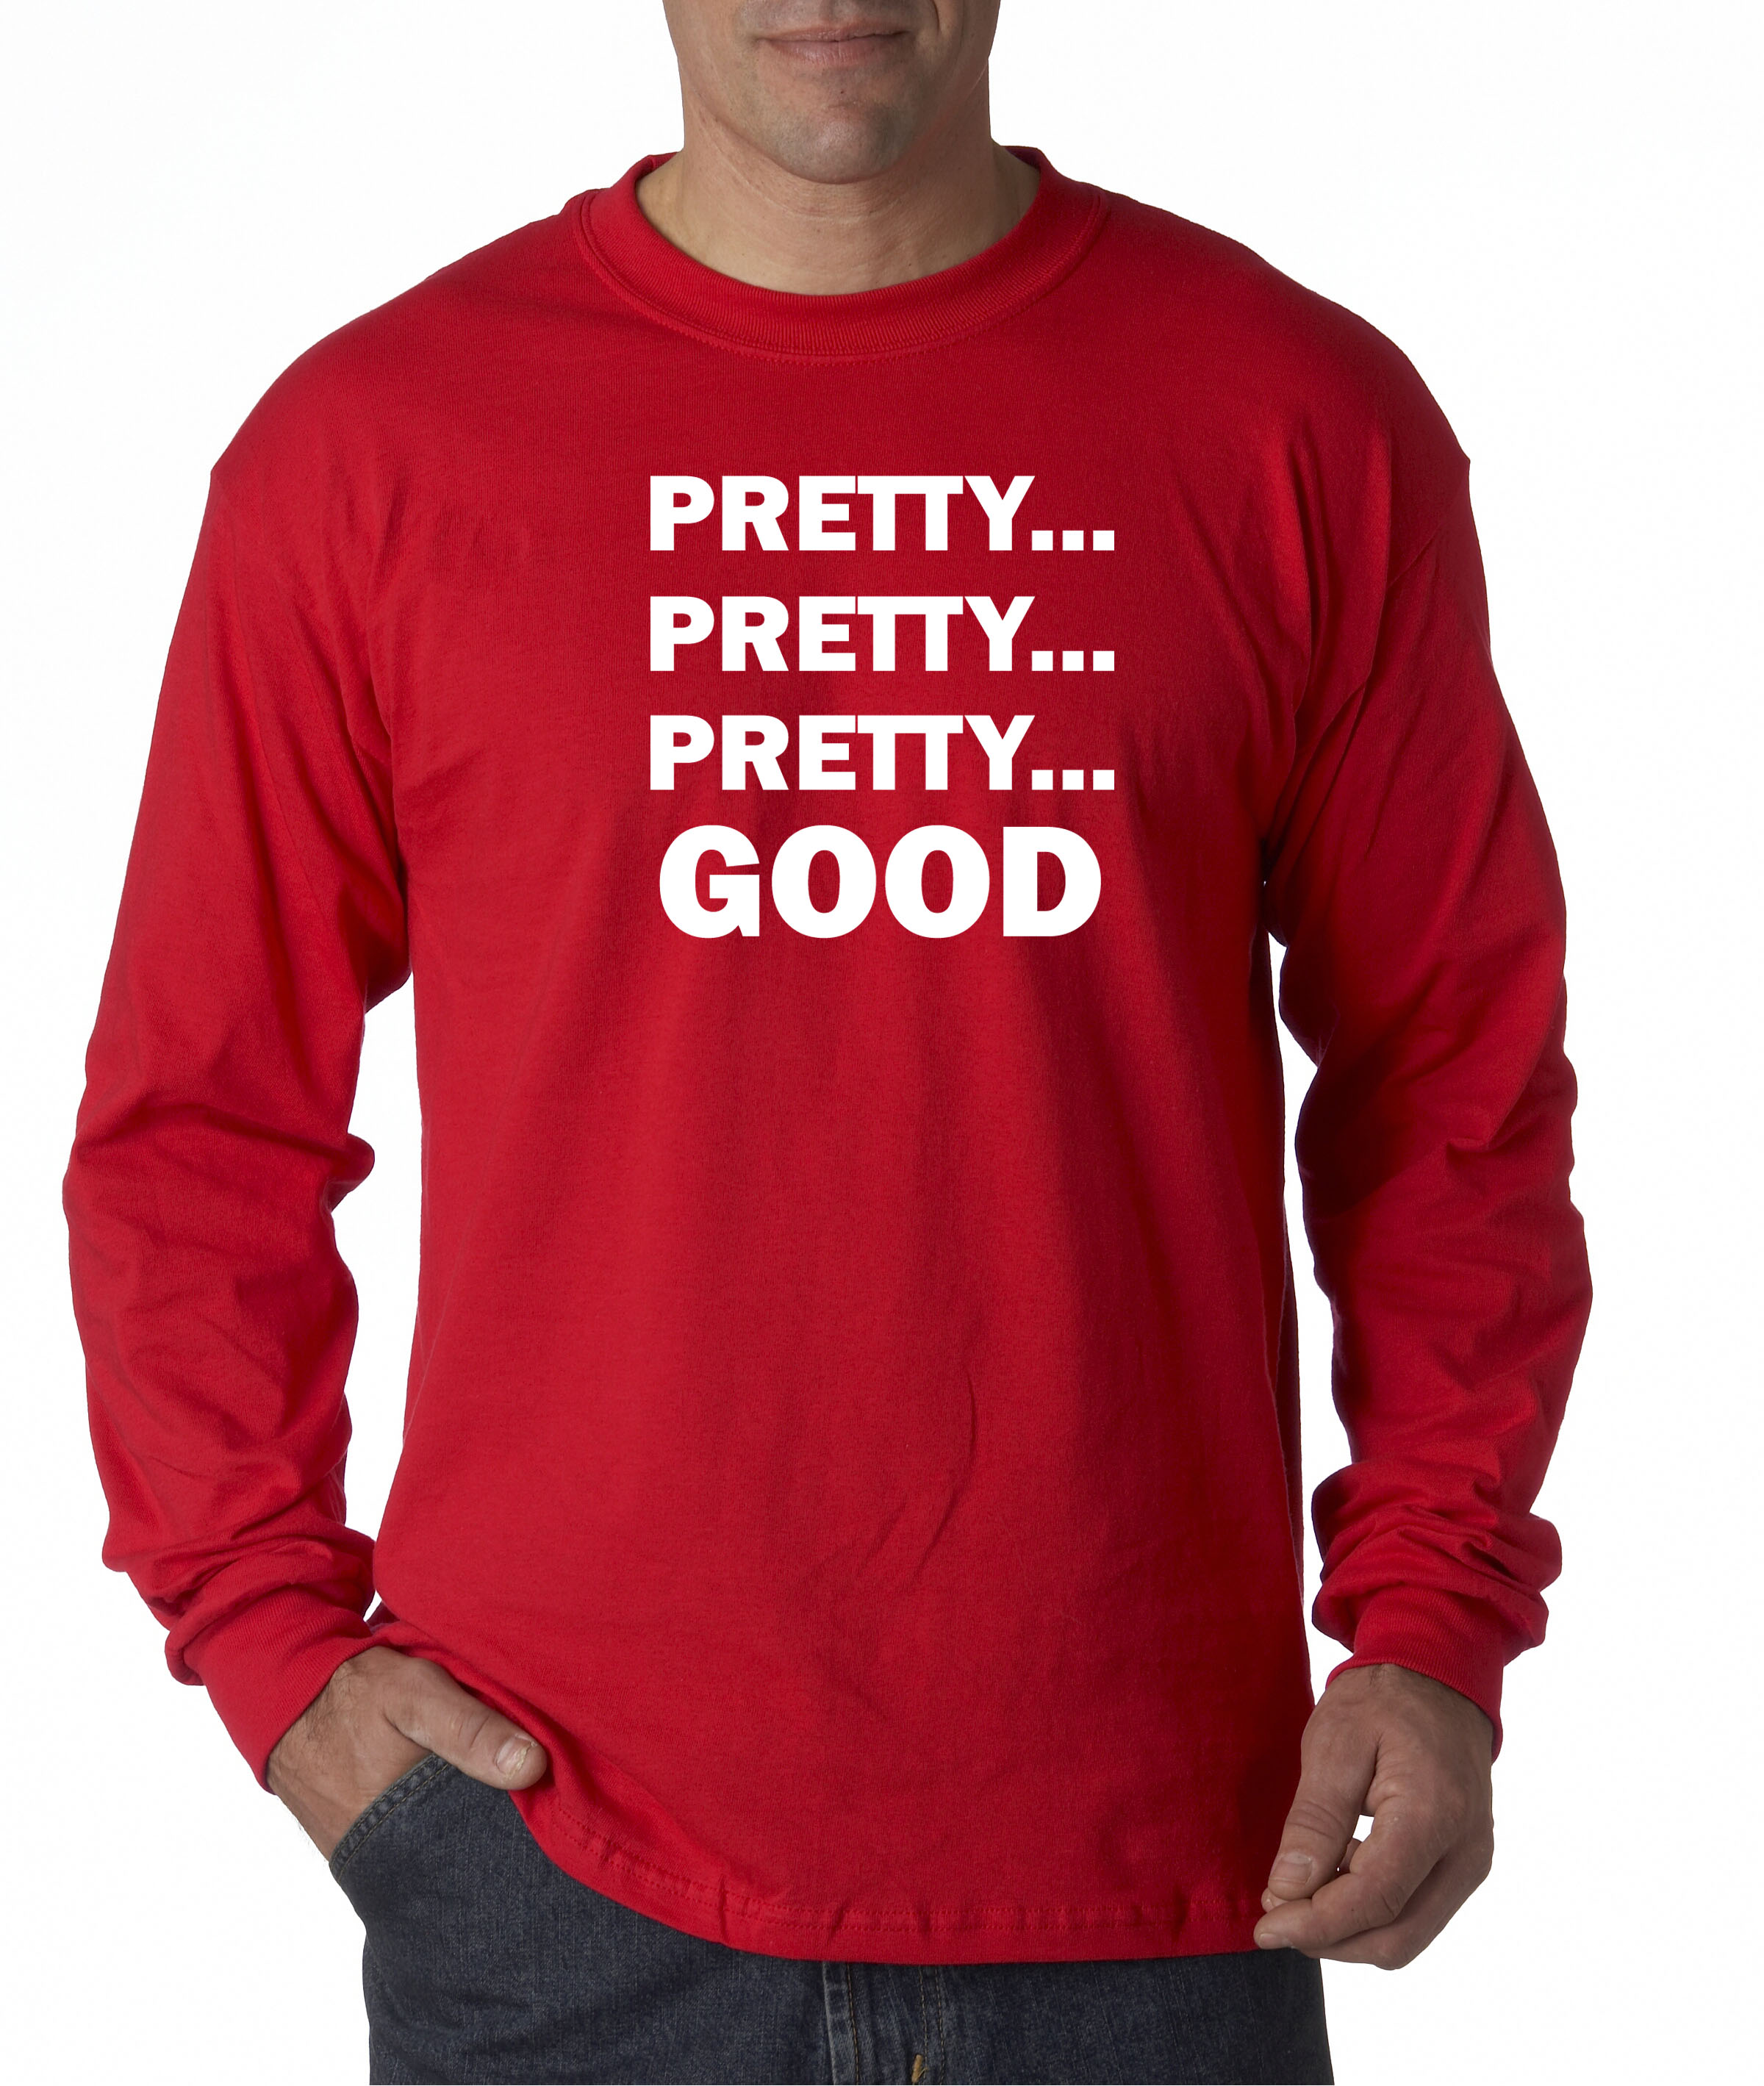 d8c6d6f55 New Way - 767 - Unisex Long-Sleeve T-Shirt Pretty Pretty Pretty Good Curb  Your Enthusiasm XL Red - Walmart.com